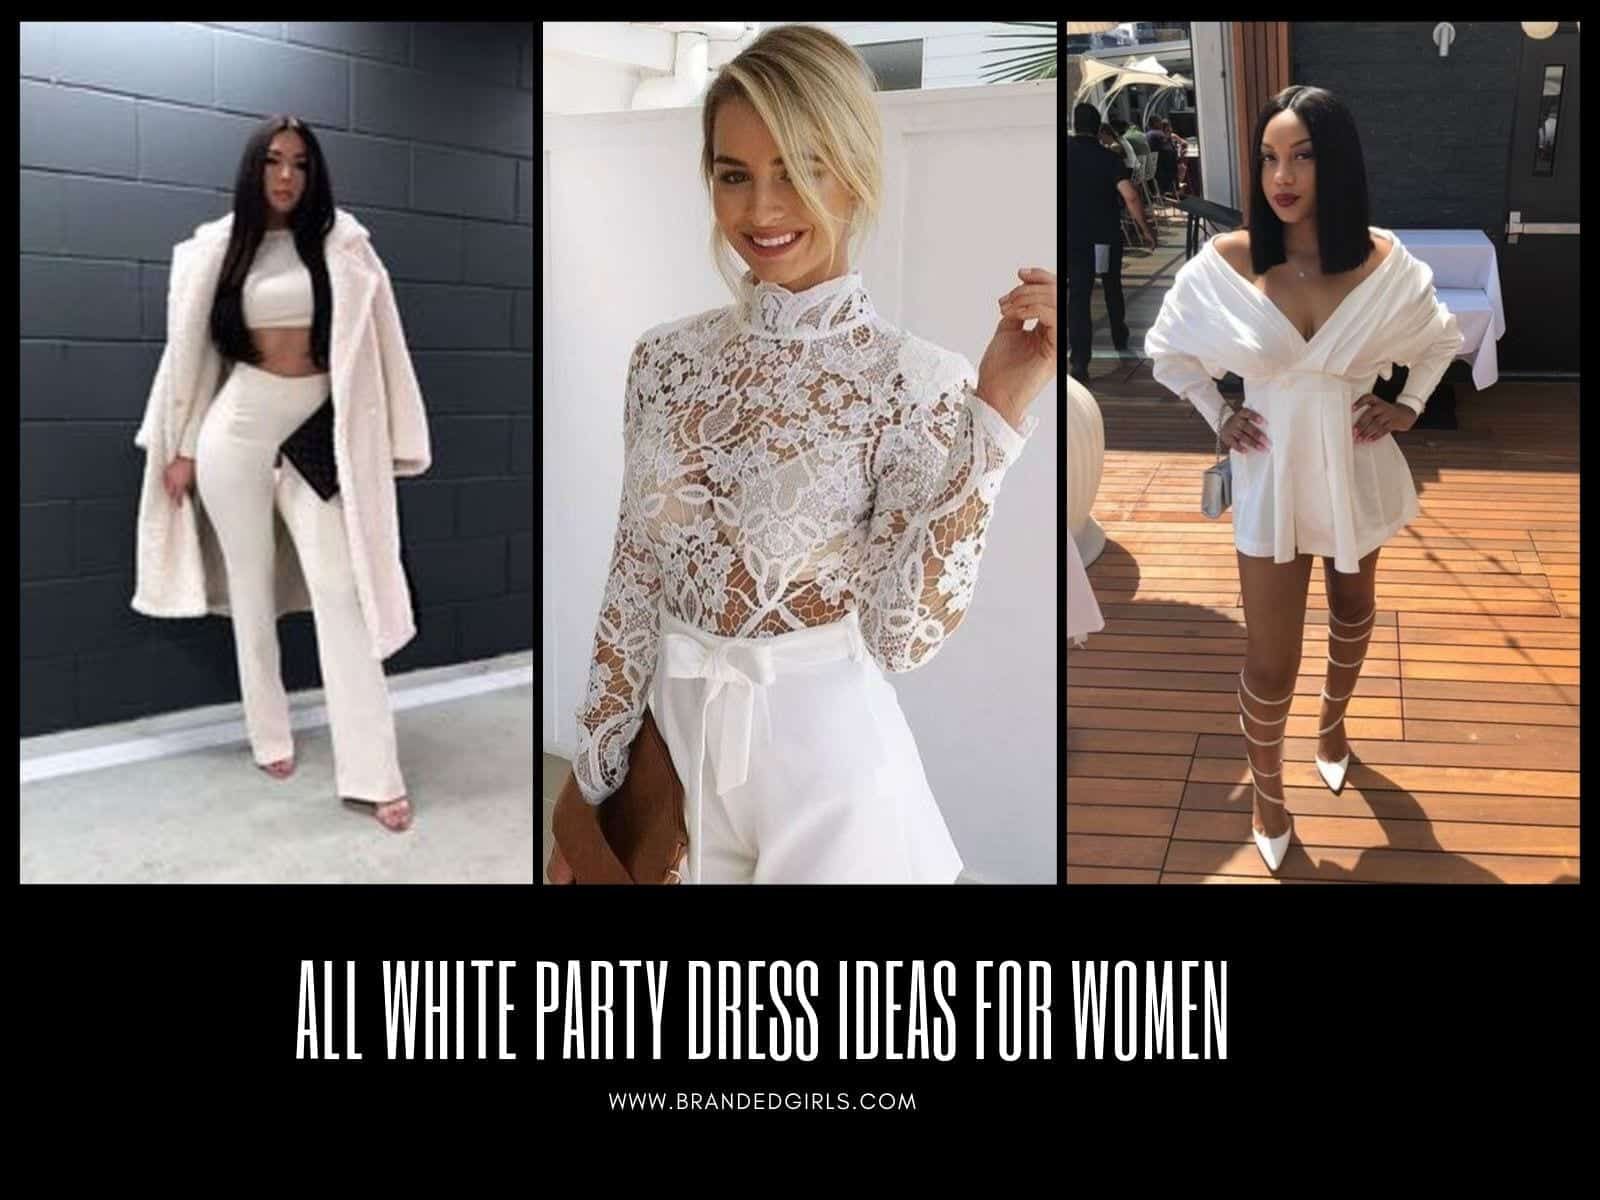 All-White-Party-Dress-Ideas-for-Women All White Party Dress Ideas for Women-19 Perfect White Outfits